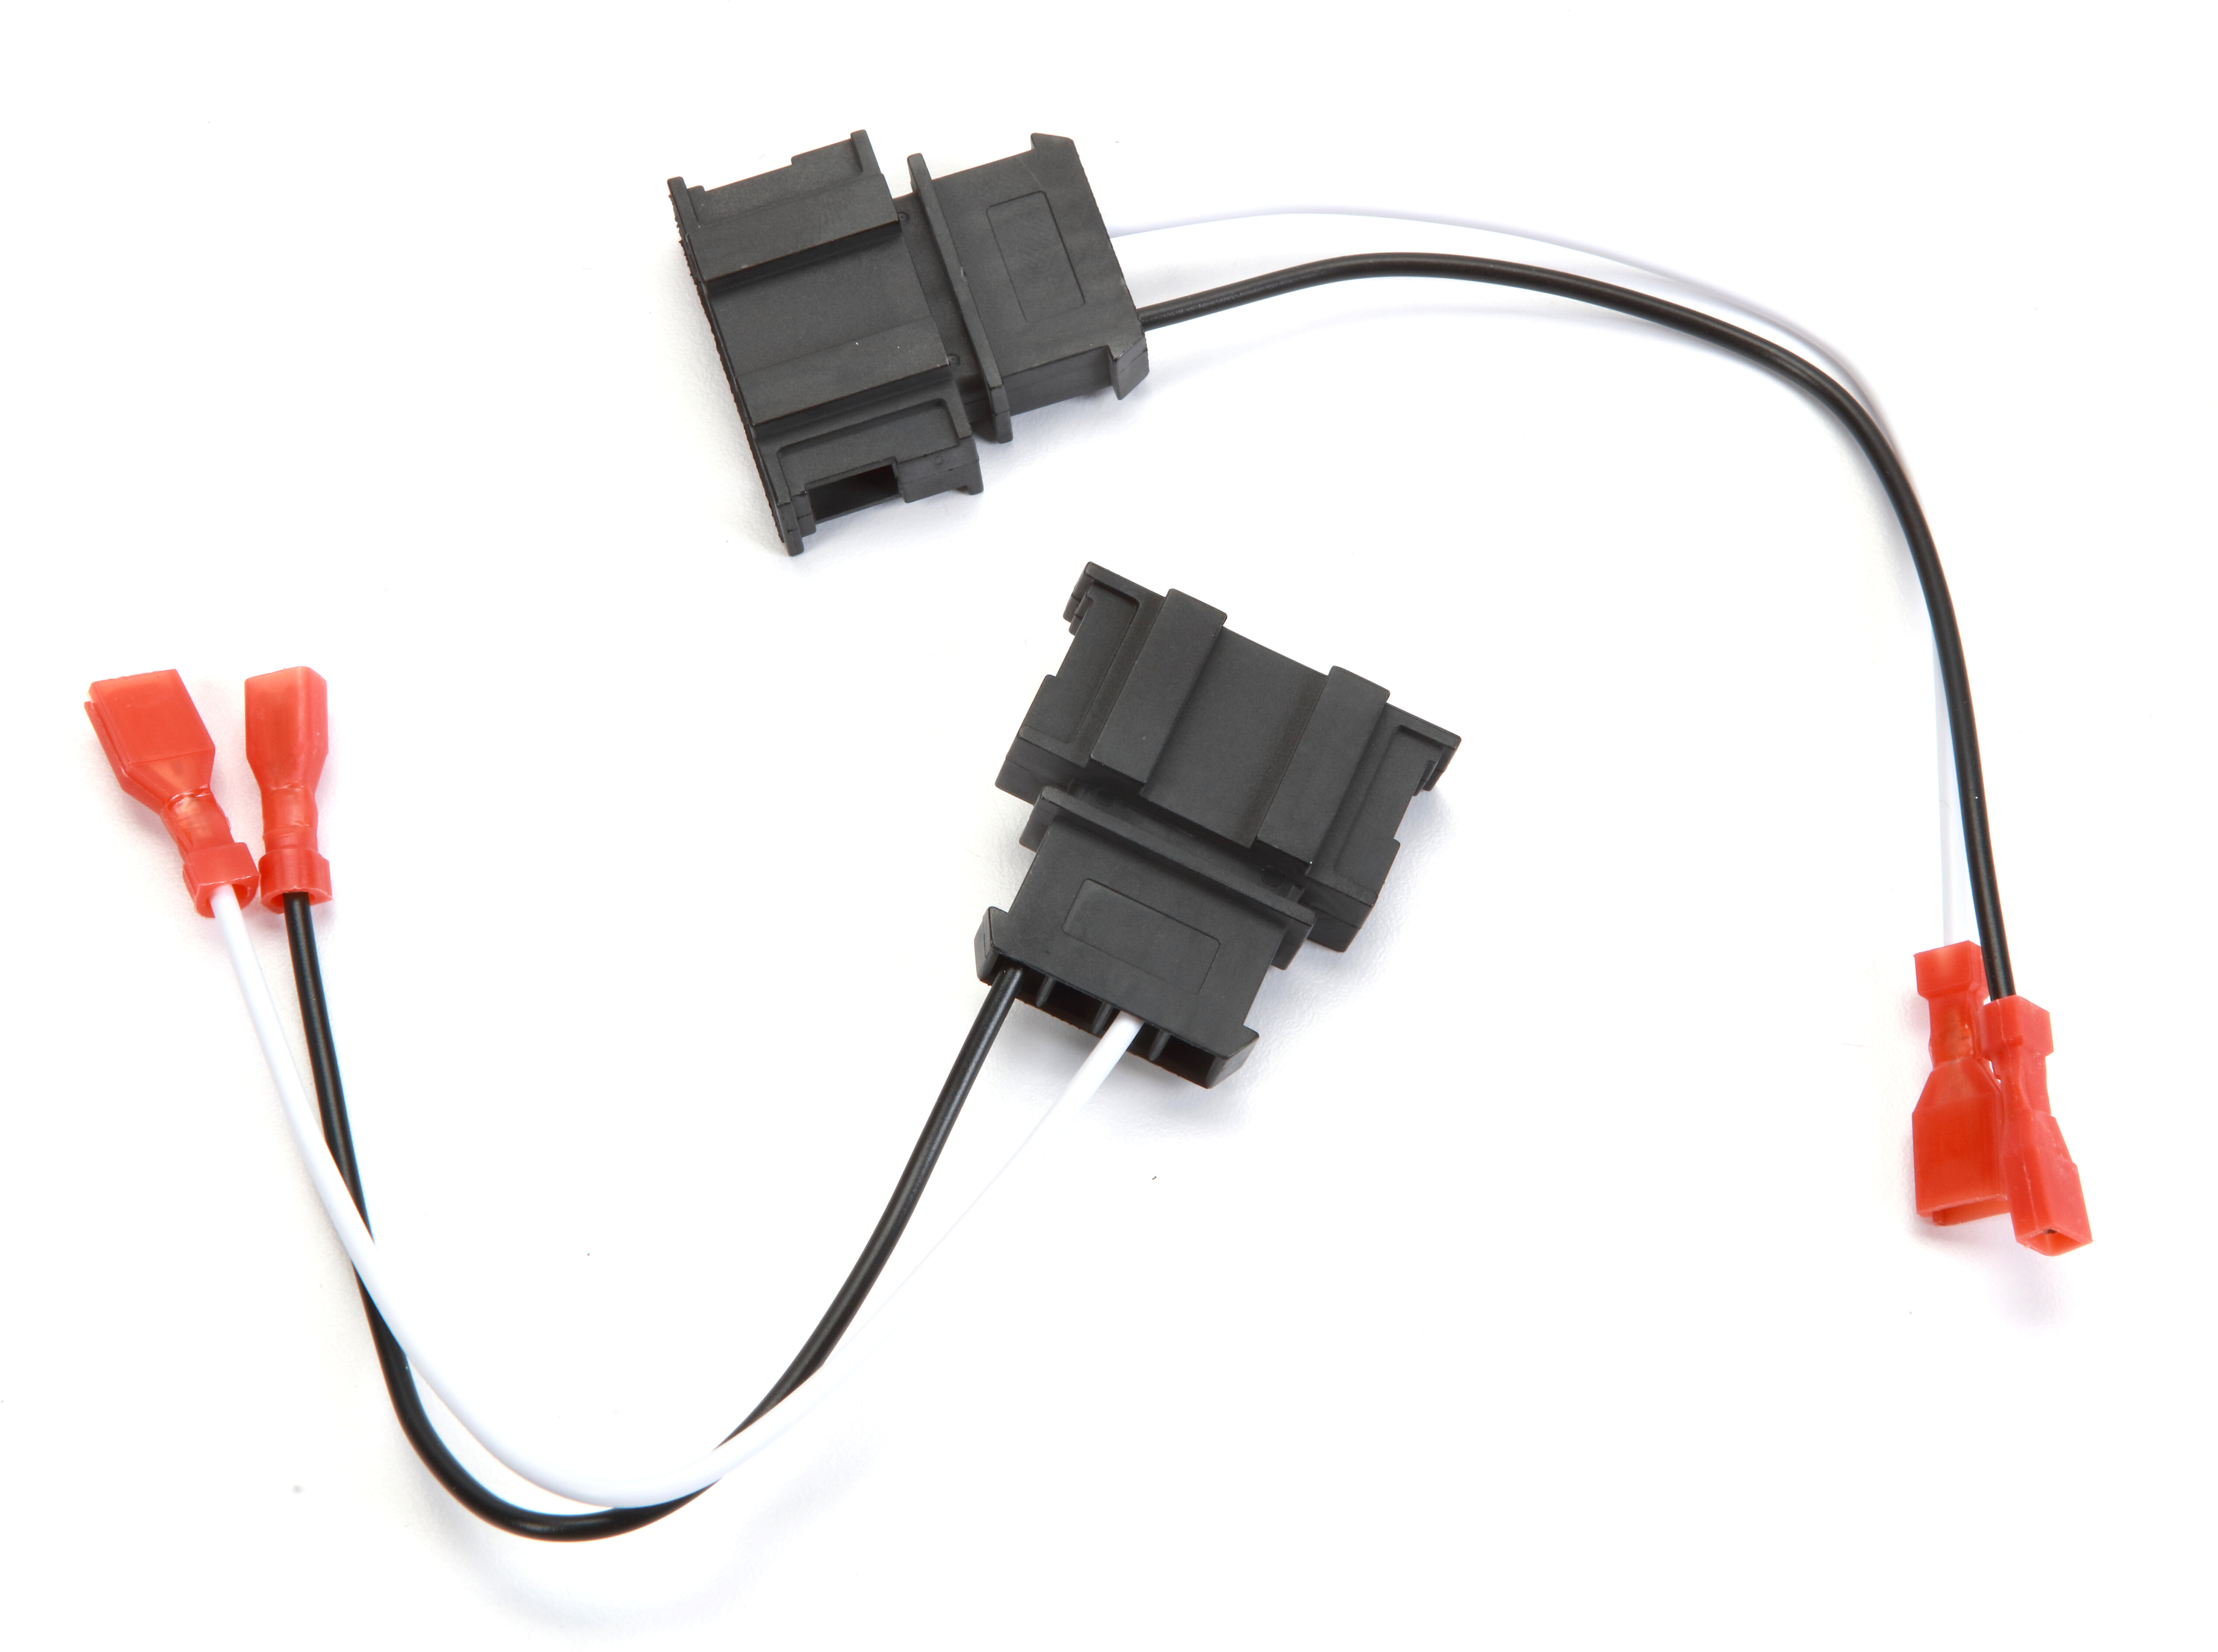 Metra 72-9001 Speaker Wiring Harnesses For select 1998-2019 Volkswagen,  Audi, and Mercedes-Benz vehicles at Crutchfield   Speaker Wiring Harness Metra      Crutchfield